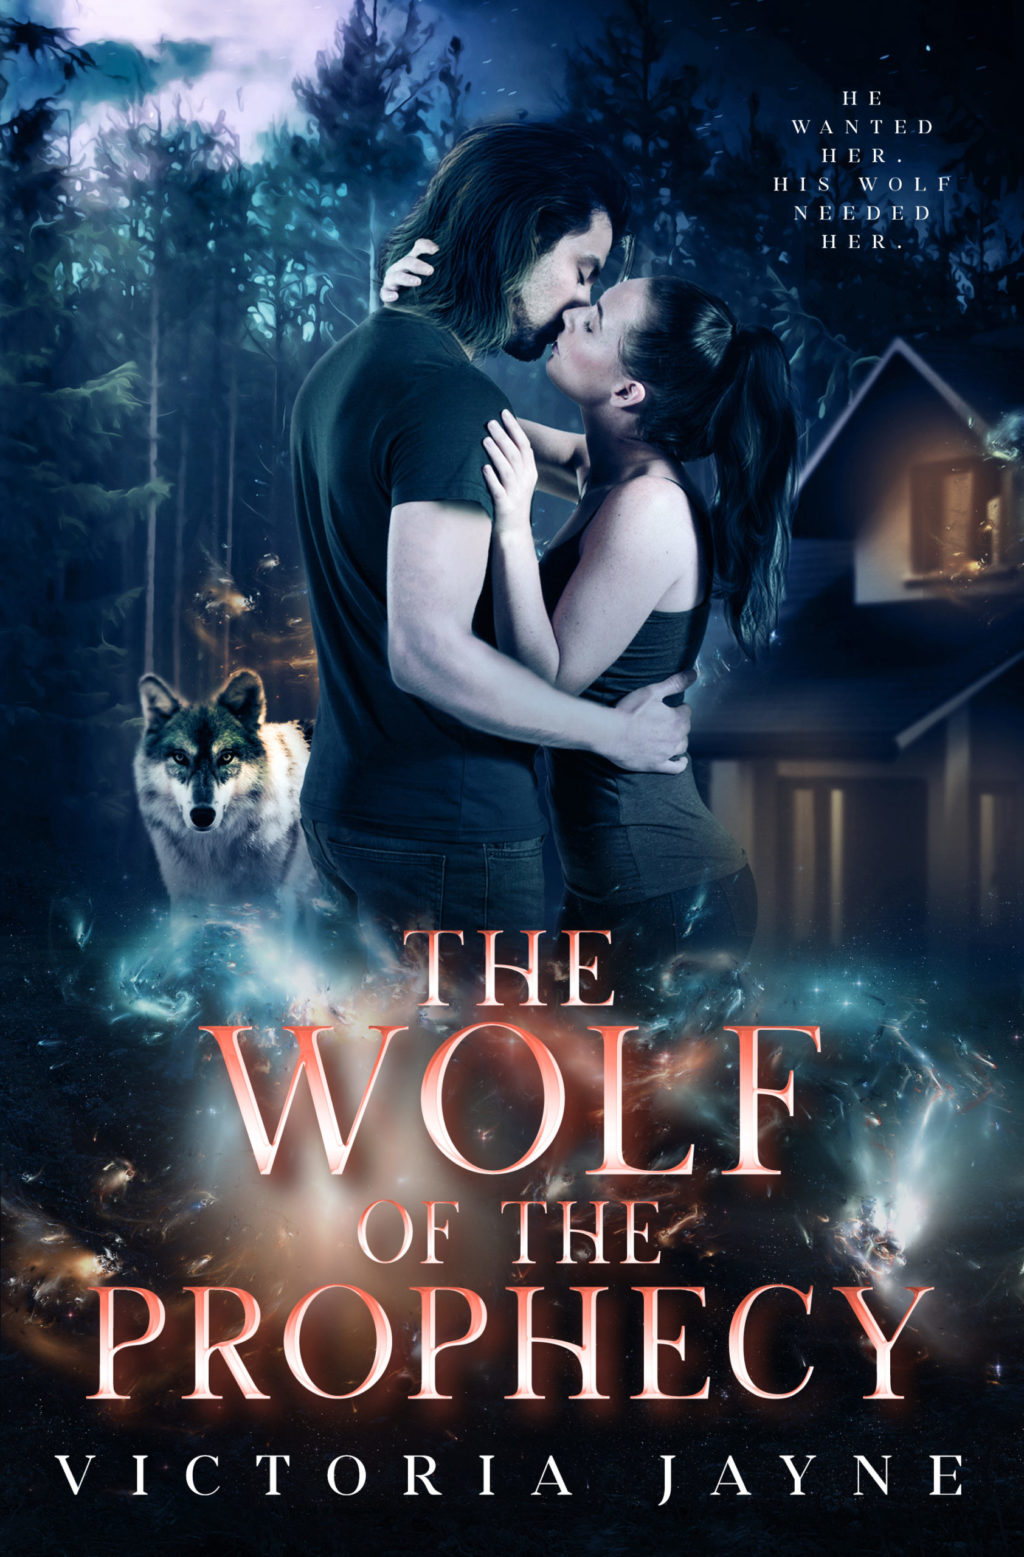 The Wolf of the Prophecy by Victoria Jayne